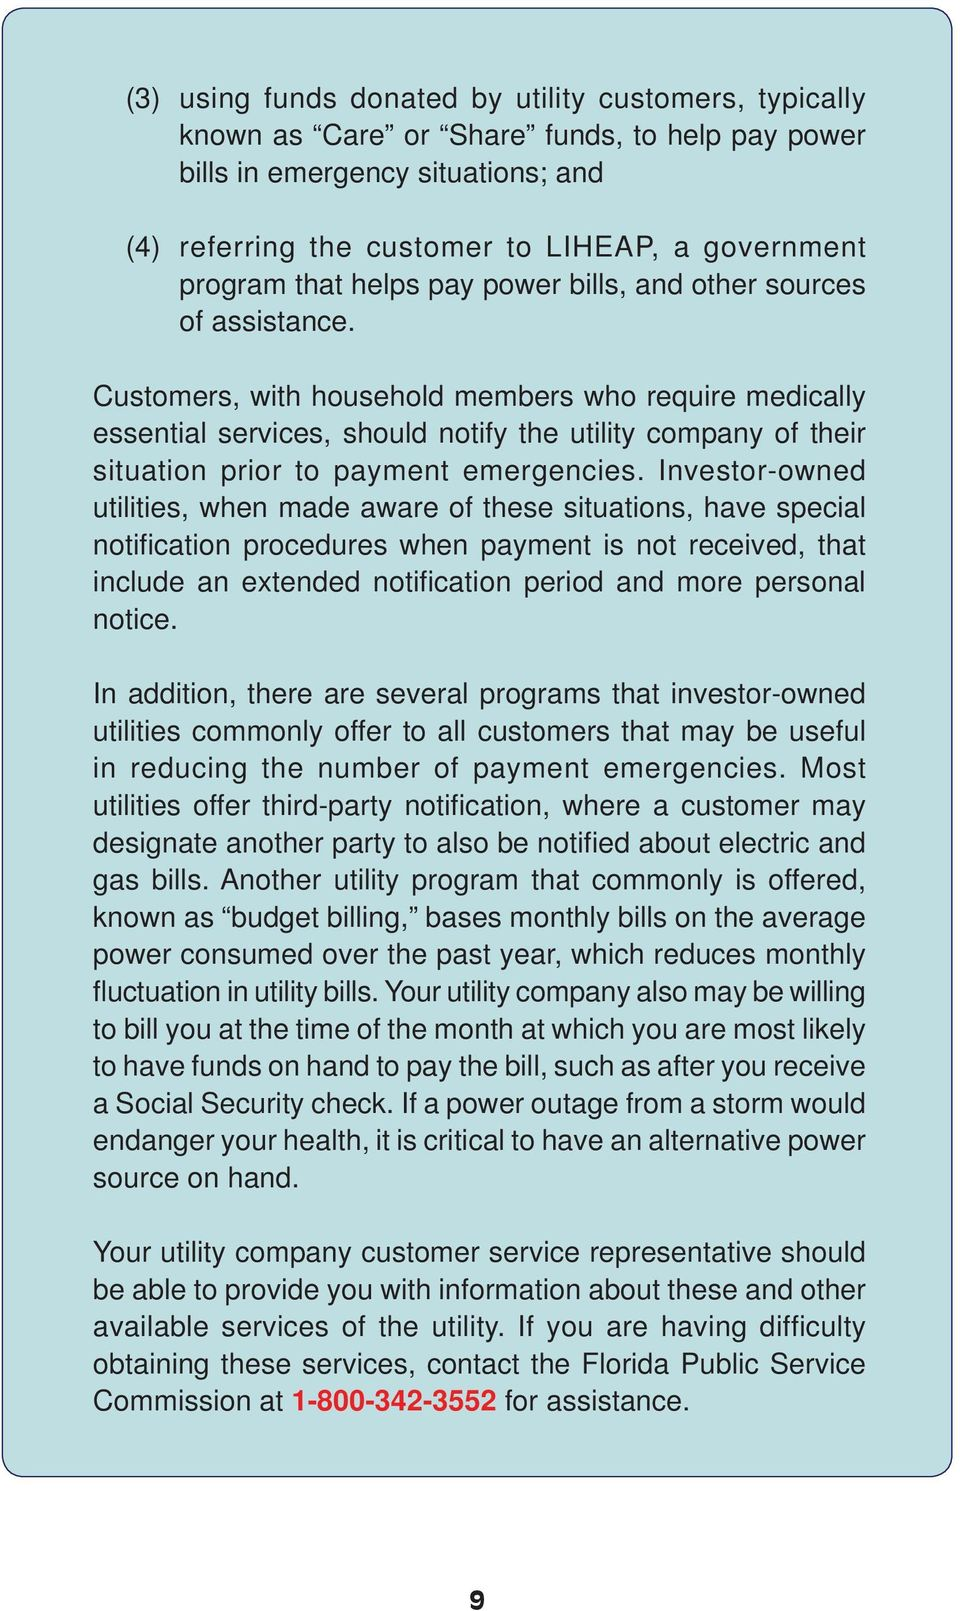 Customers, with household members who require medically essential services, should notify the utility company of their situation prior to payment emergencies.